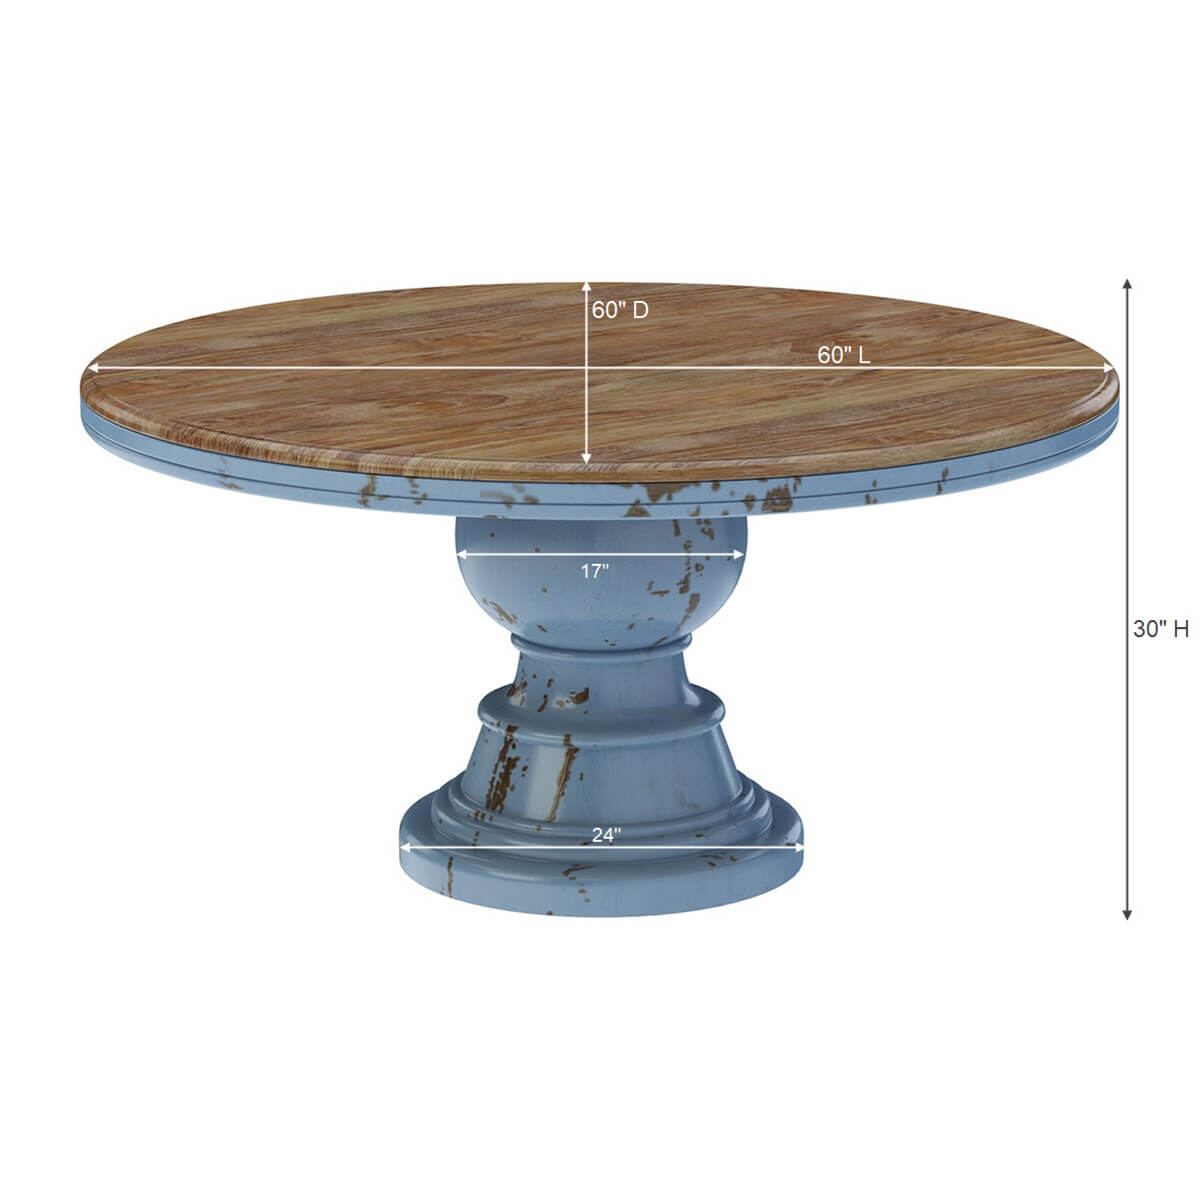 Nauvoo Blue Two Tone Mahogany Wood Round Dining Table